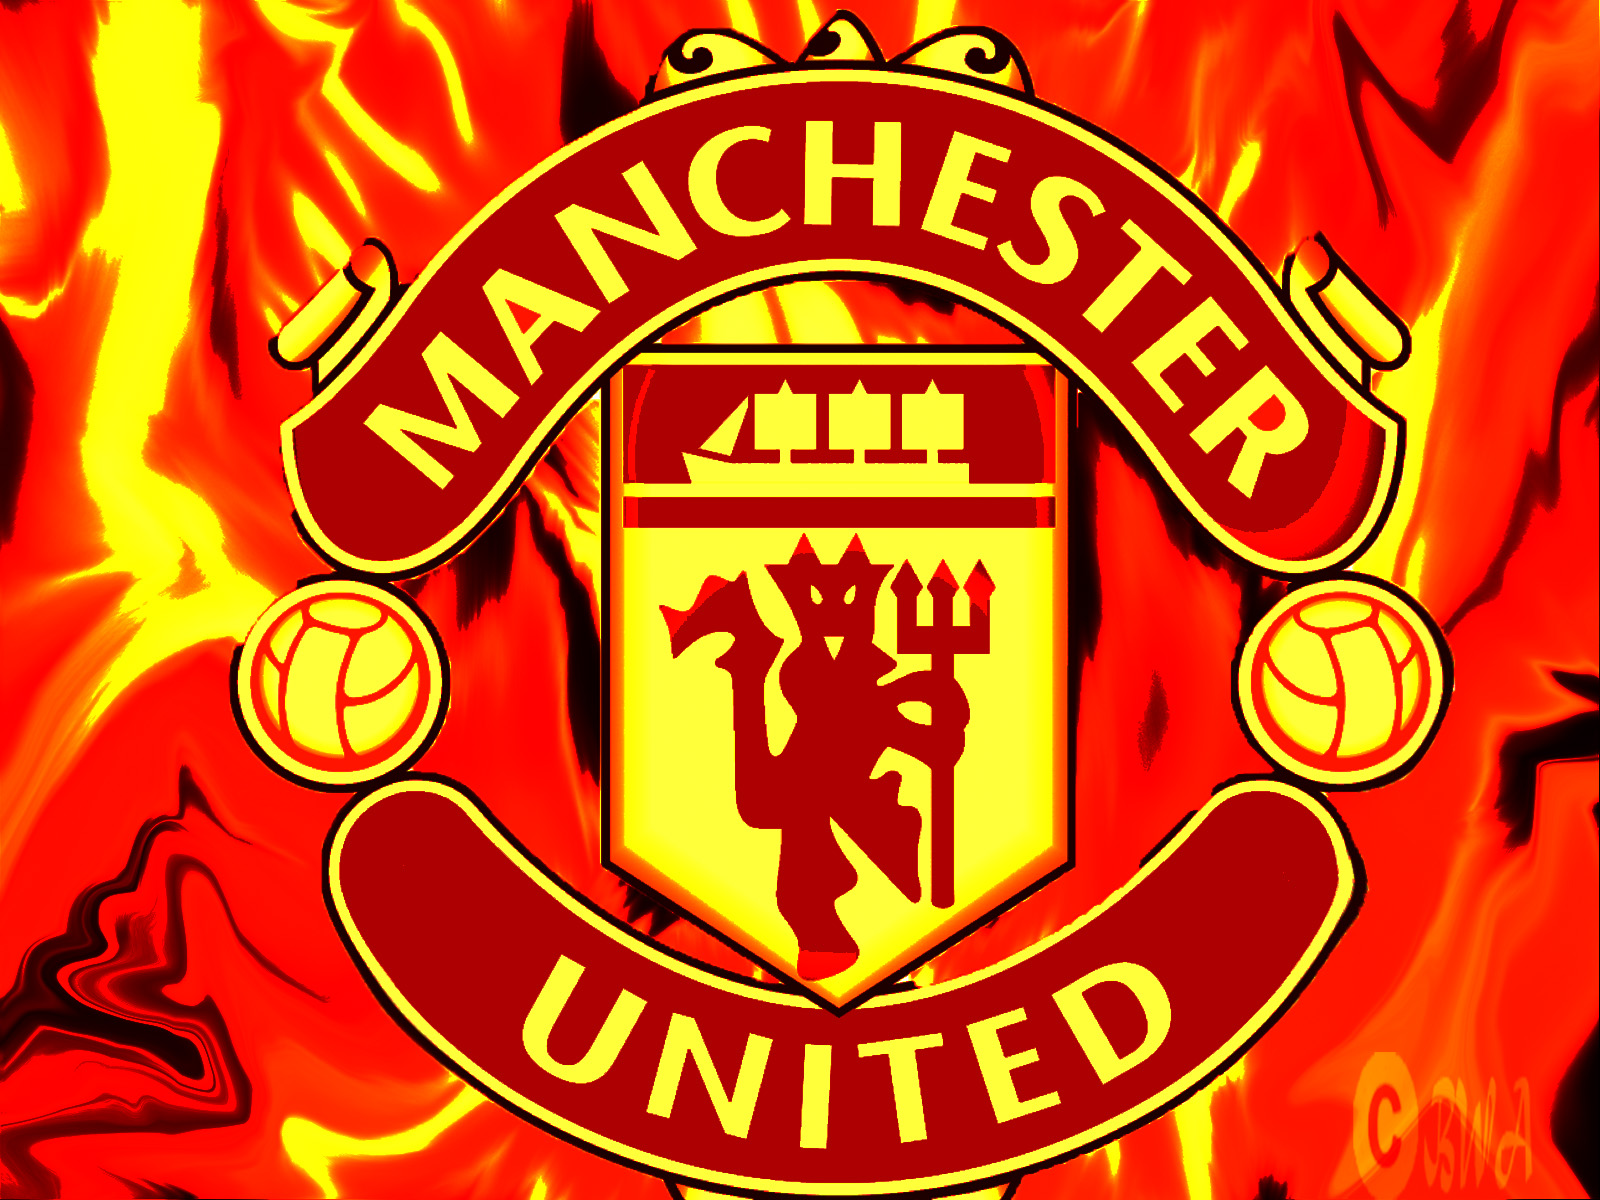 Manchester united logo hd wallpaper2 bar red sports bar and manchester united logo hd wallpaper2 voltagebd Gallery